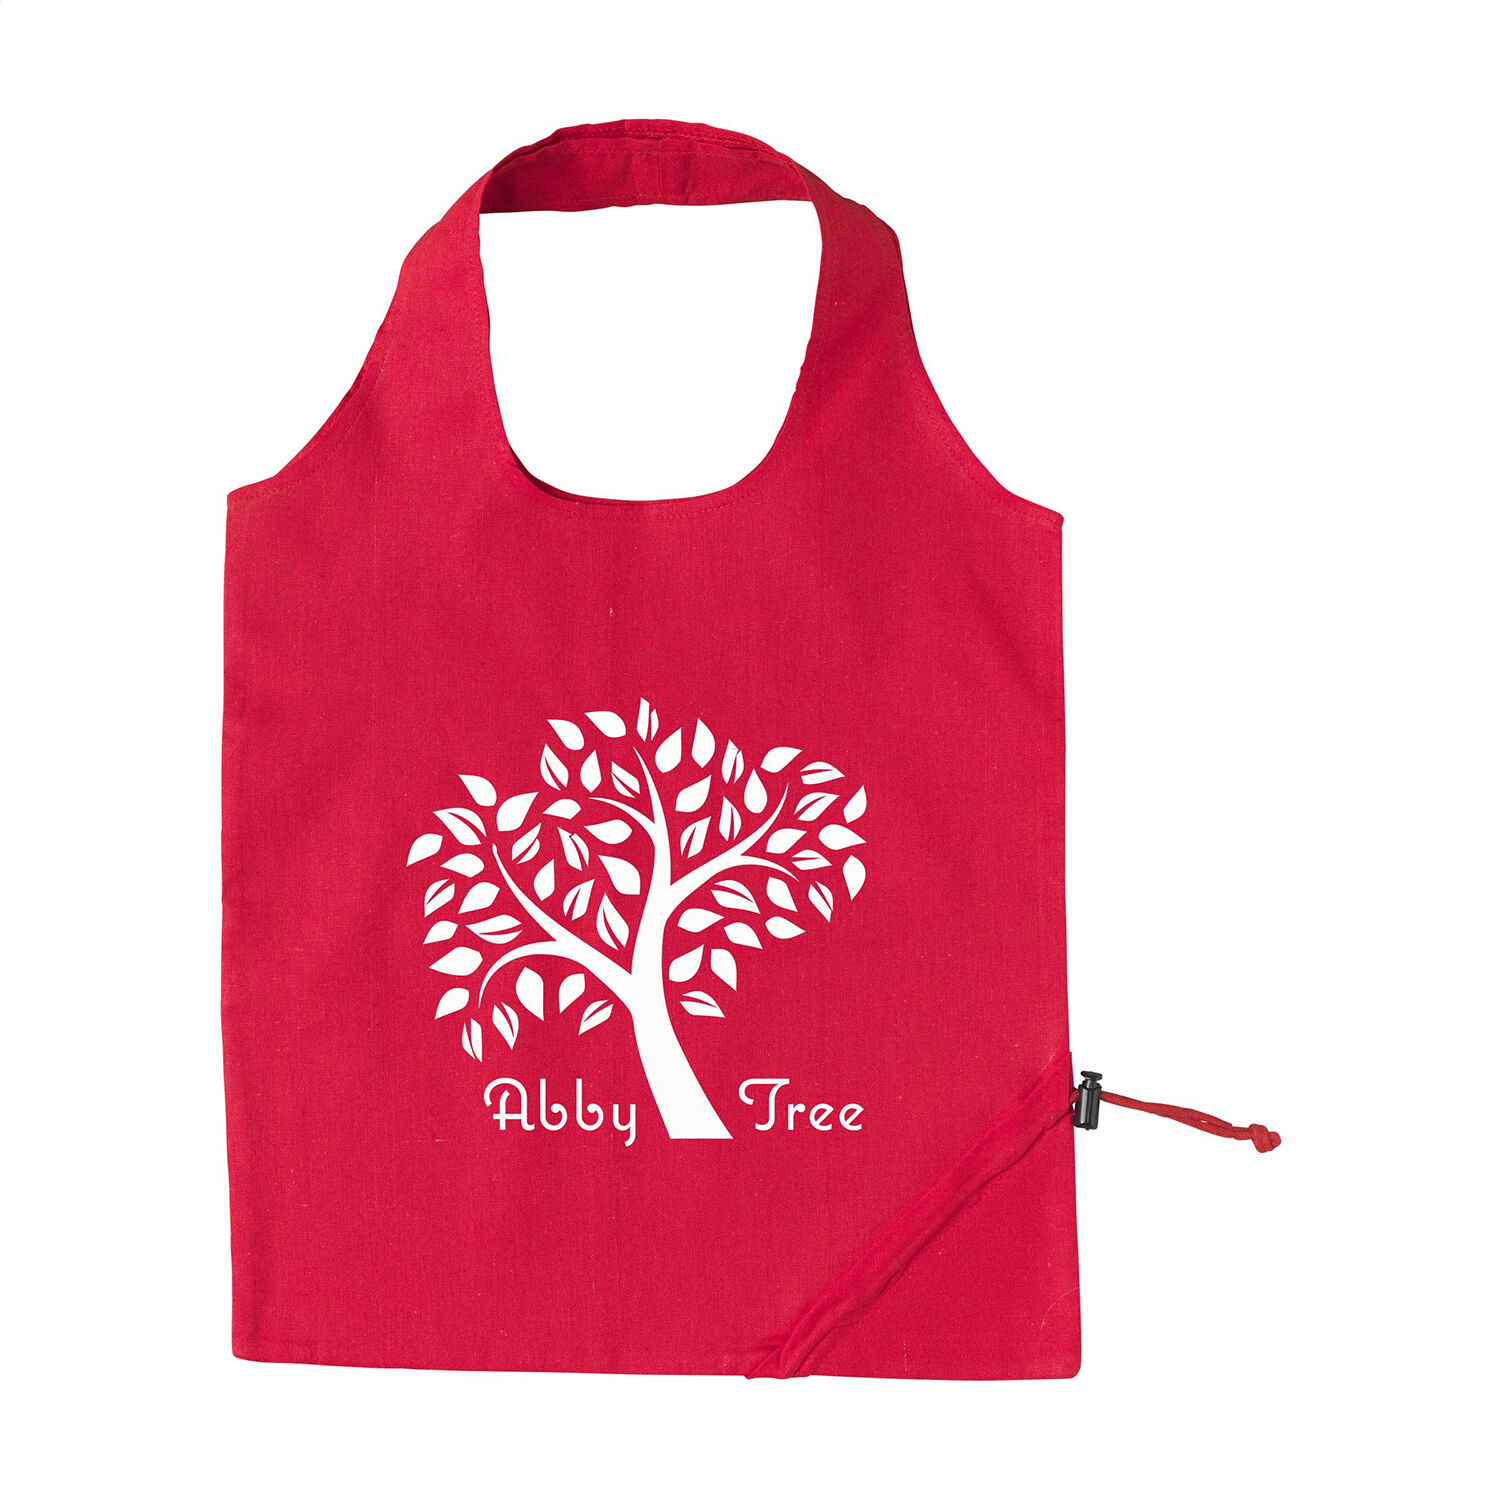 Foldable Cotton Shopping Bags